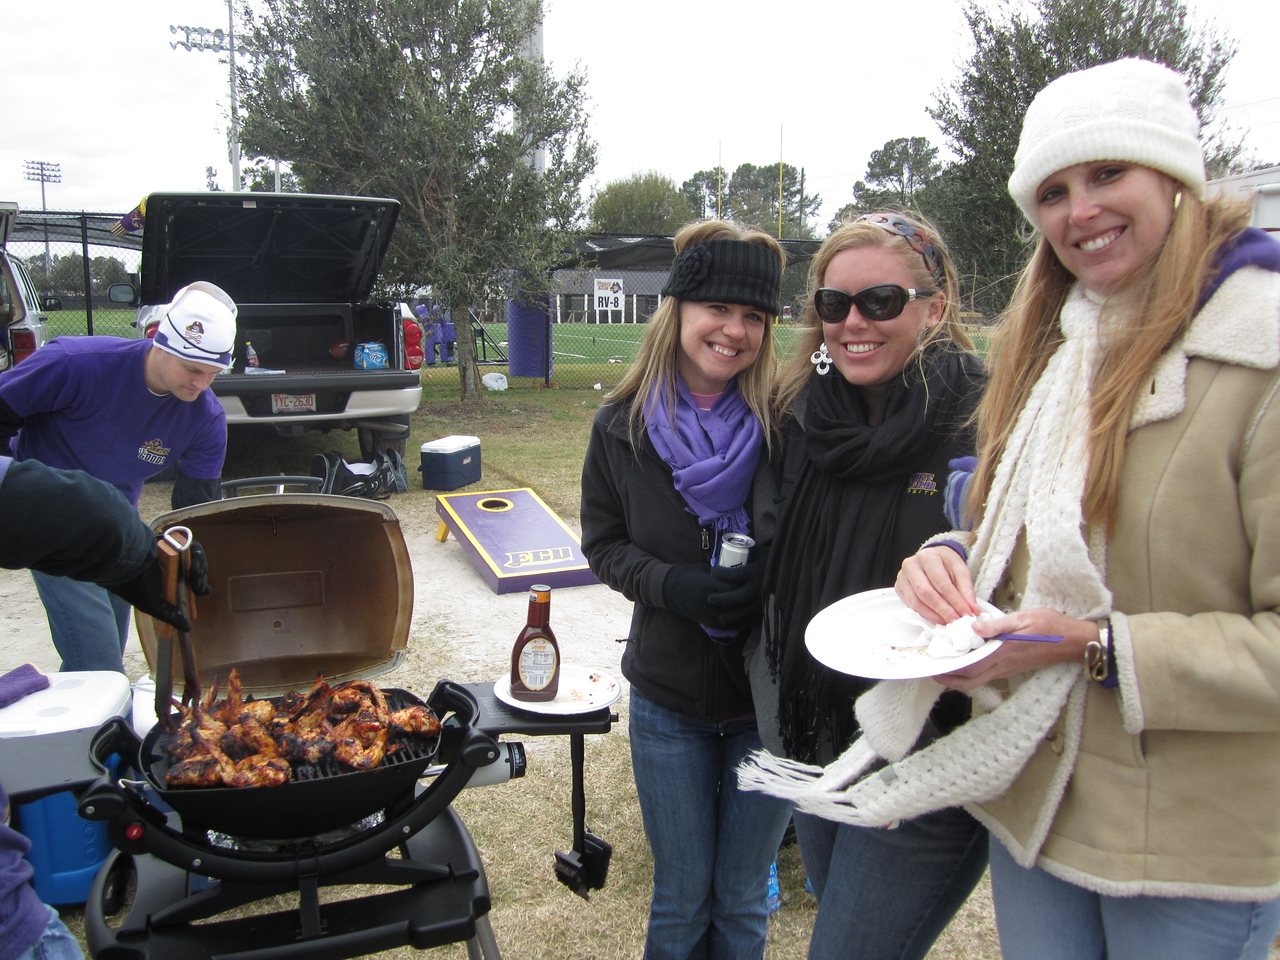 11/5/2011 ECU vs Southern Miss - chicken on the grill & Jen, Lauren, Staci